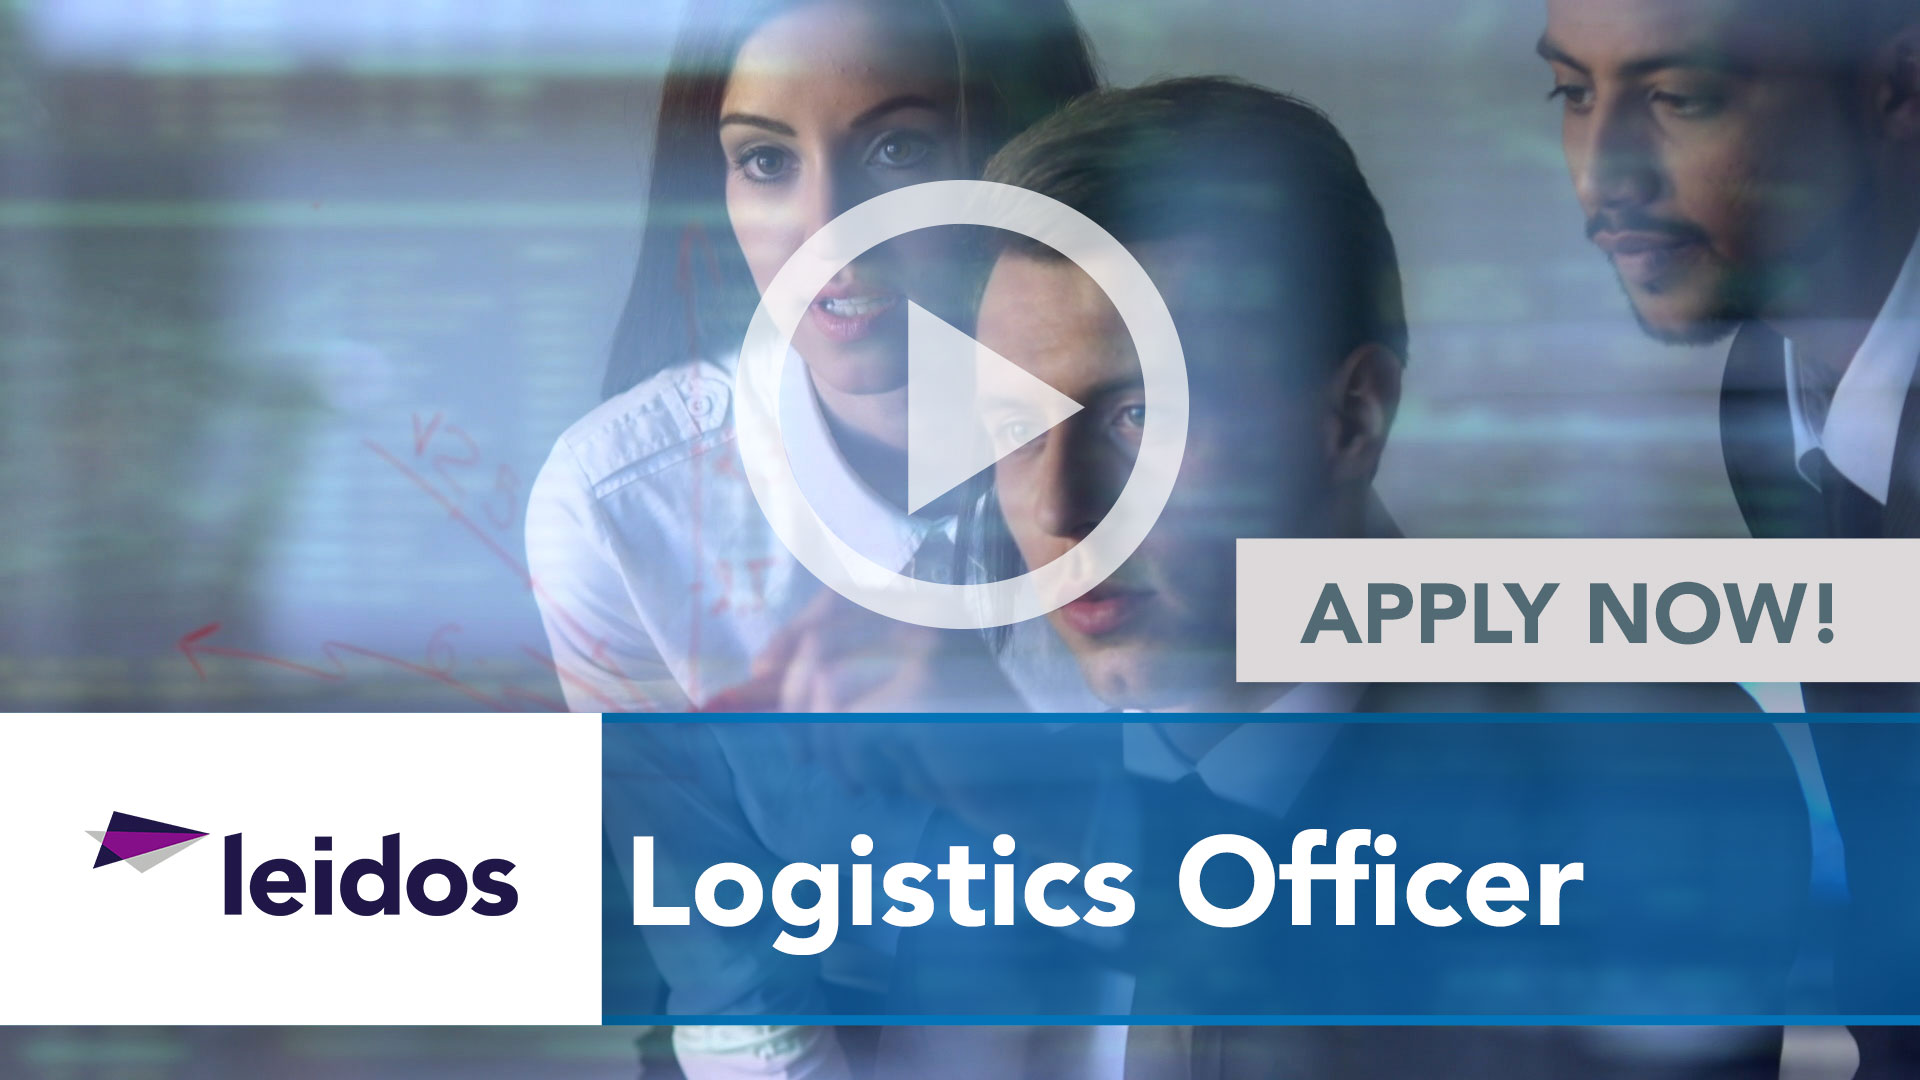 Watch our careers video for available job opening Logistics Officer in National Capital Region with